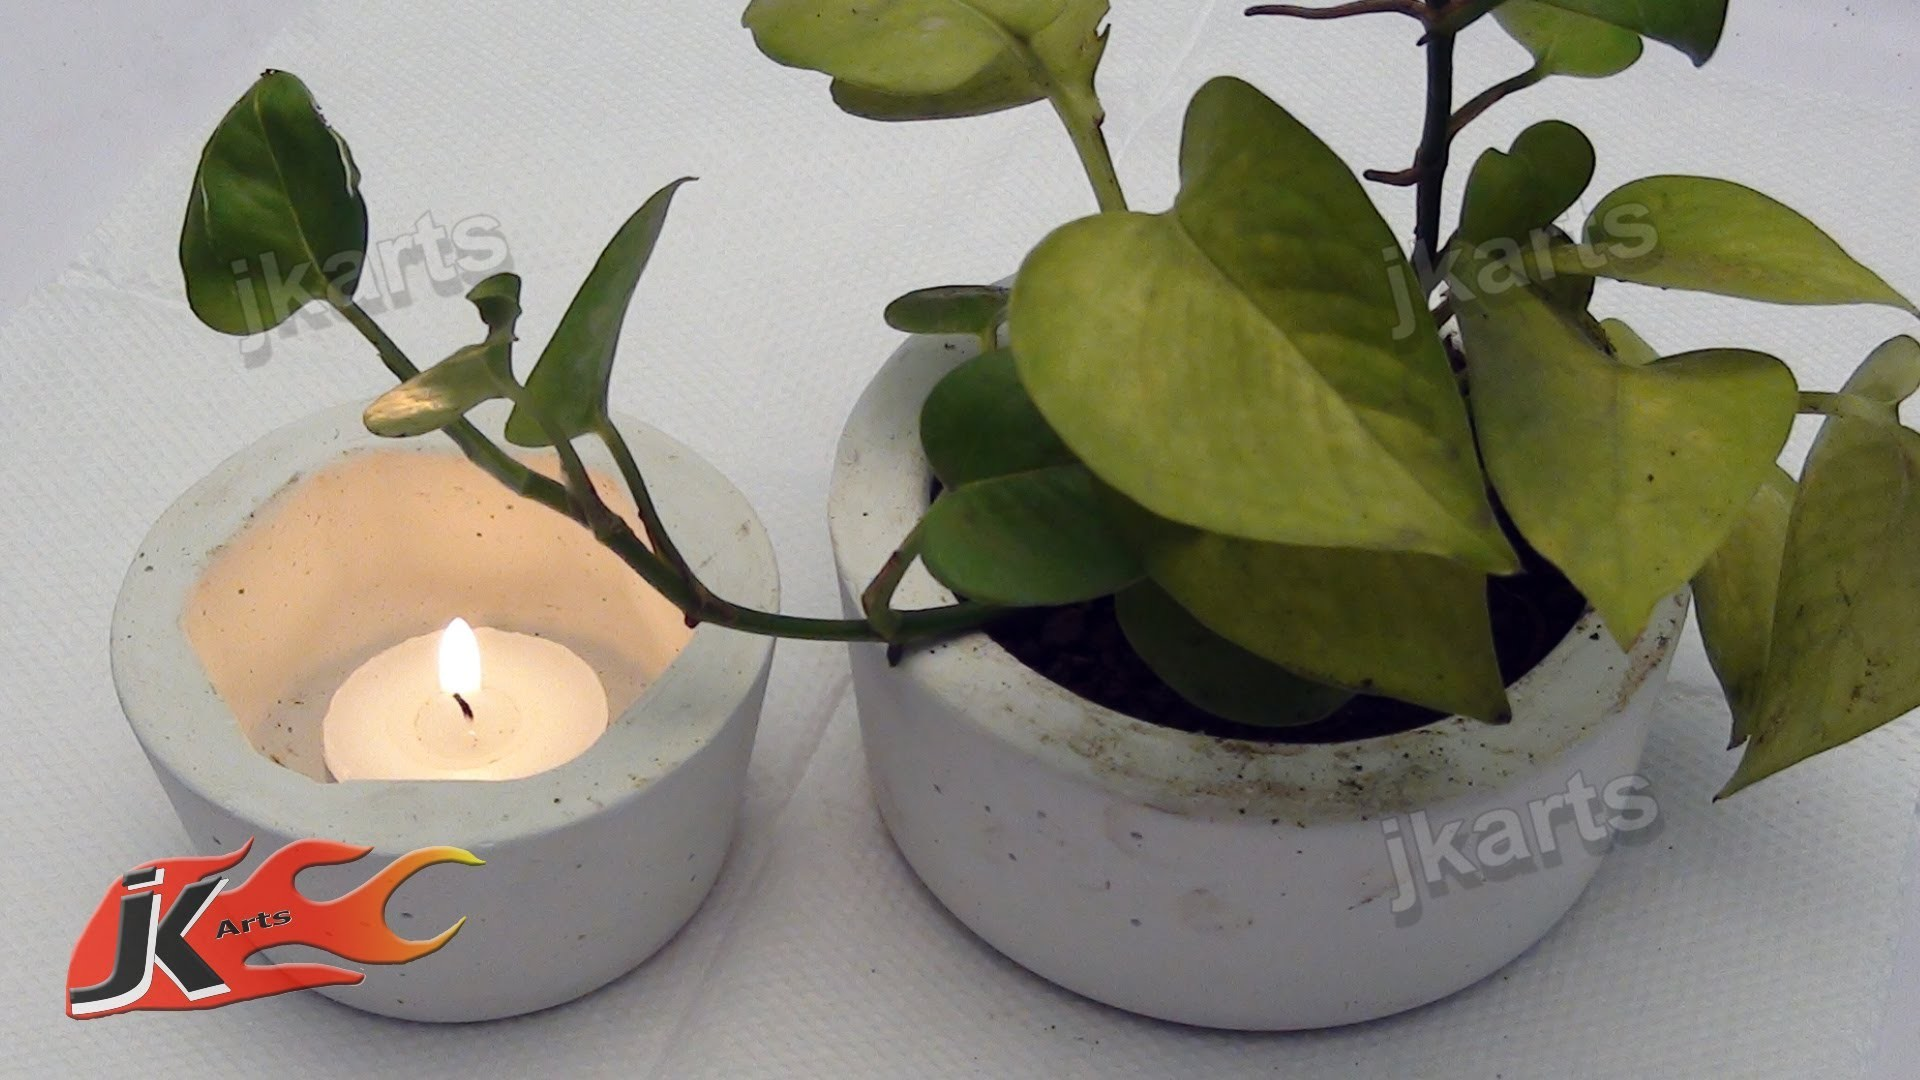 DIY How to make Cement Planter | candle holder | Ashtray - JK Arts 104